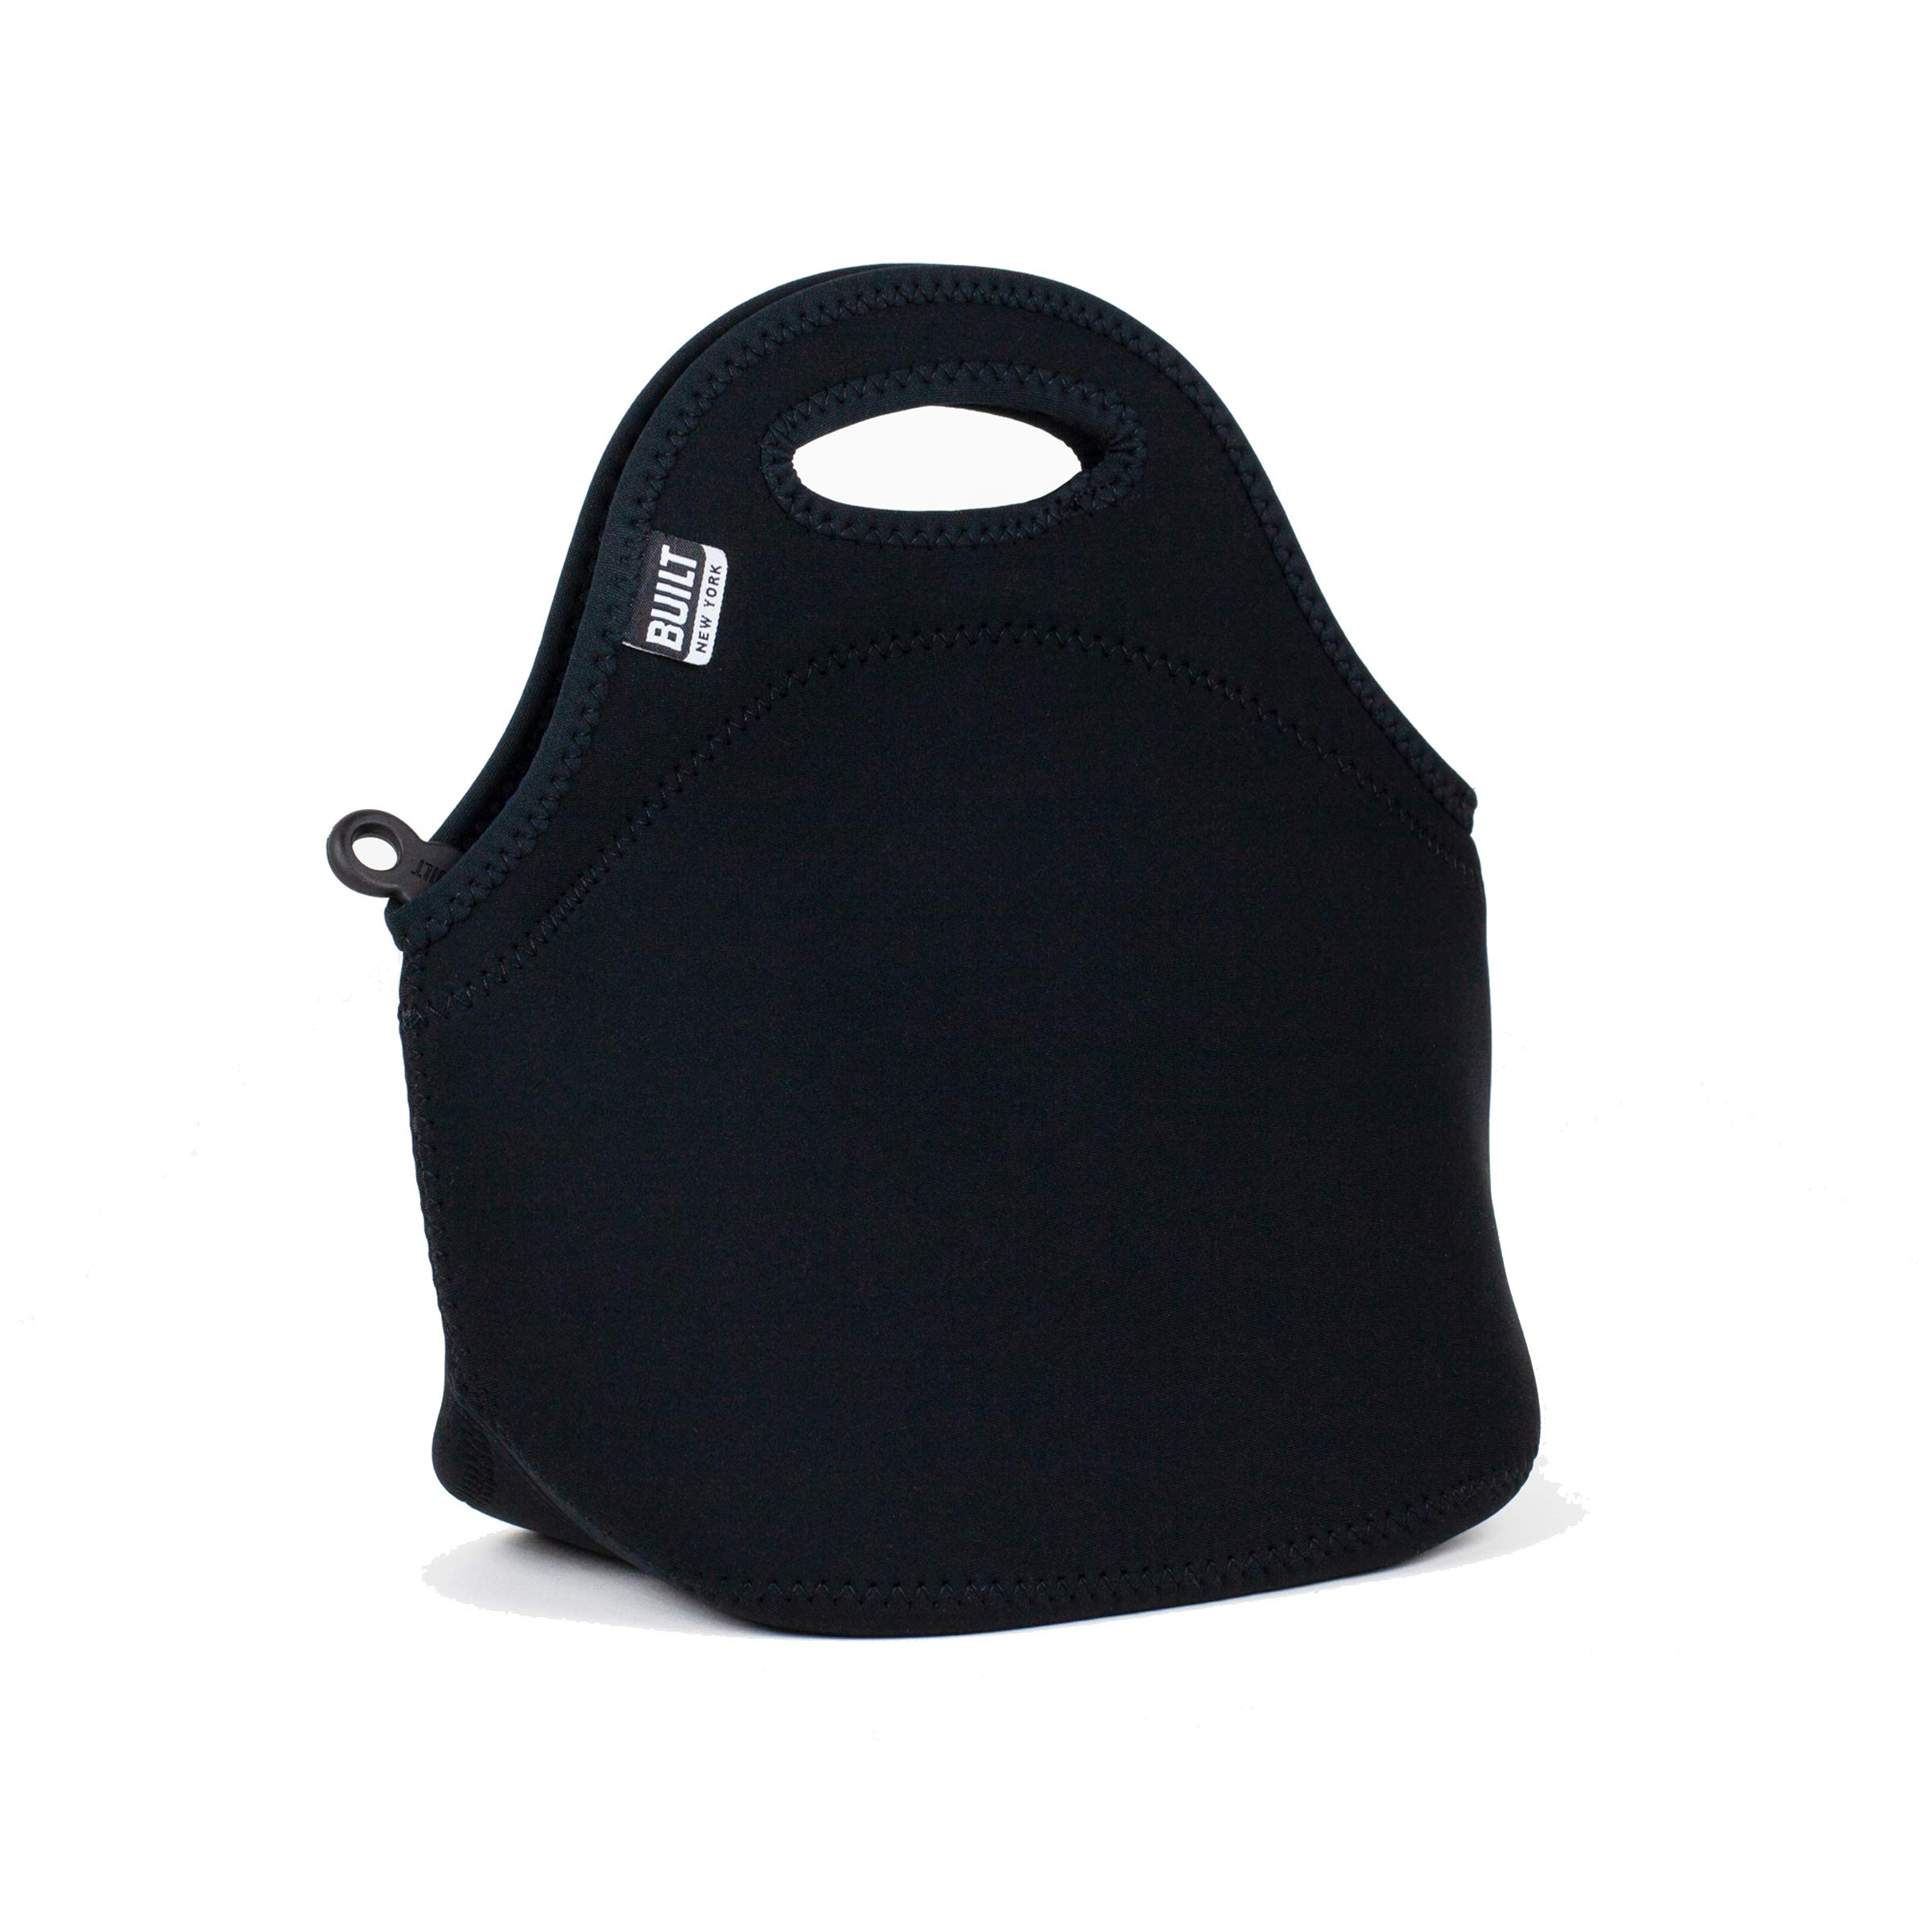 BUILT LB31-BLK Gourmet Getaway Soft Neoprene Lunch Tote Bag - Lightweight, Insulated and Reusable, Black by BUILT